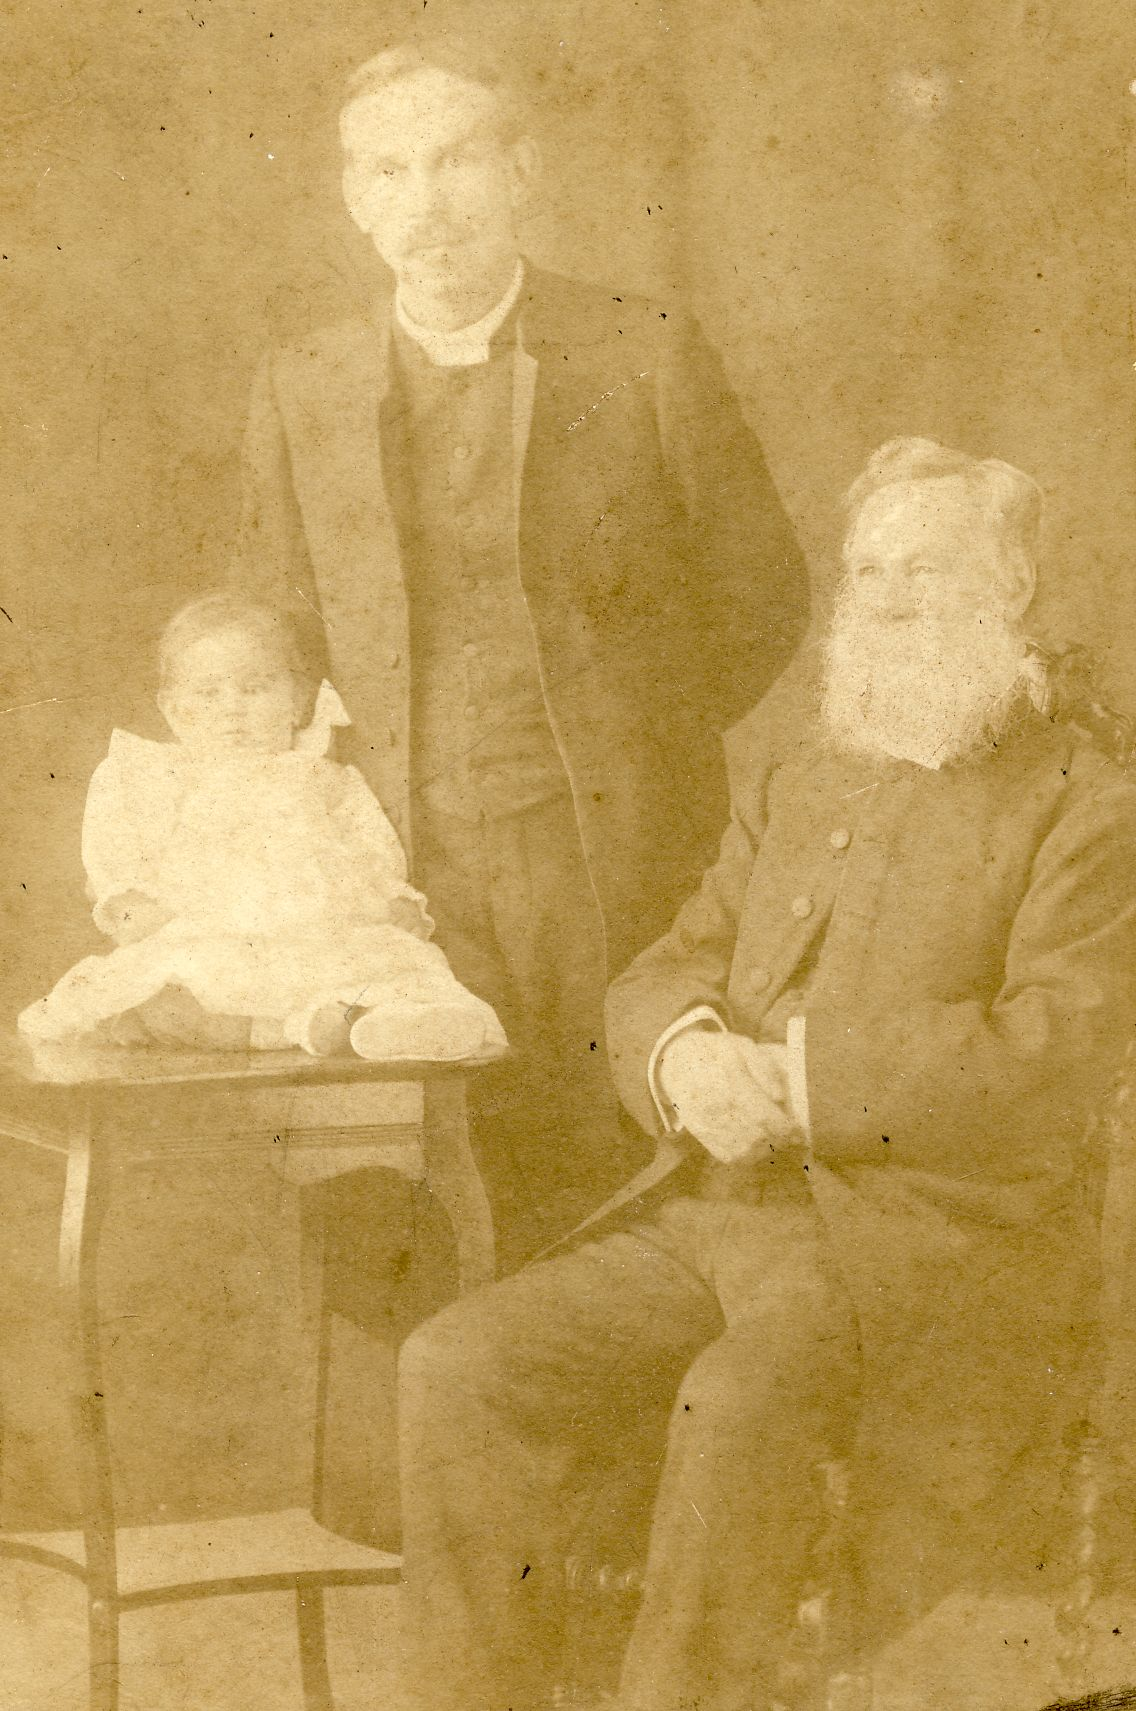 My father (the baby!), with his father and grandfather